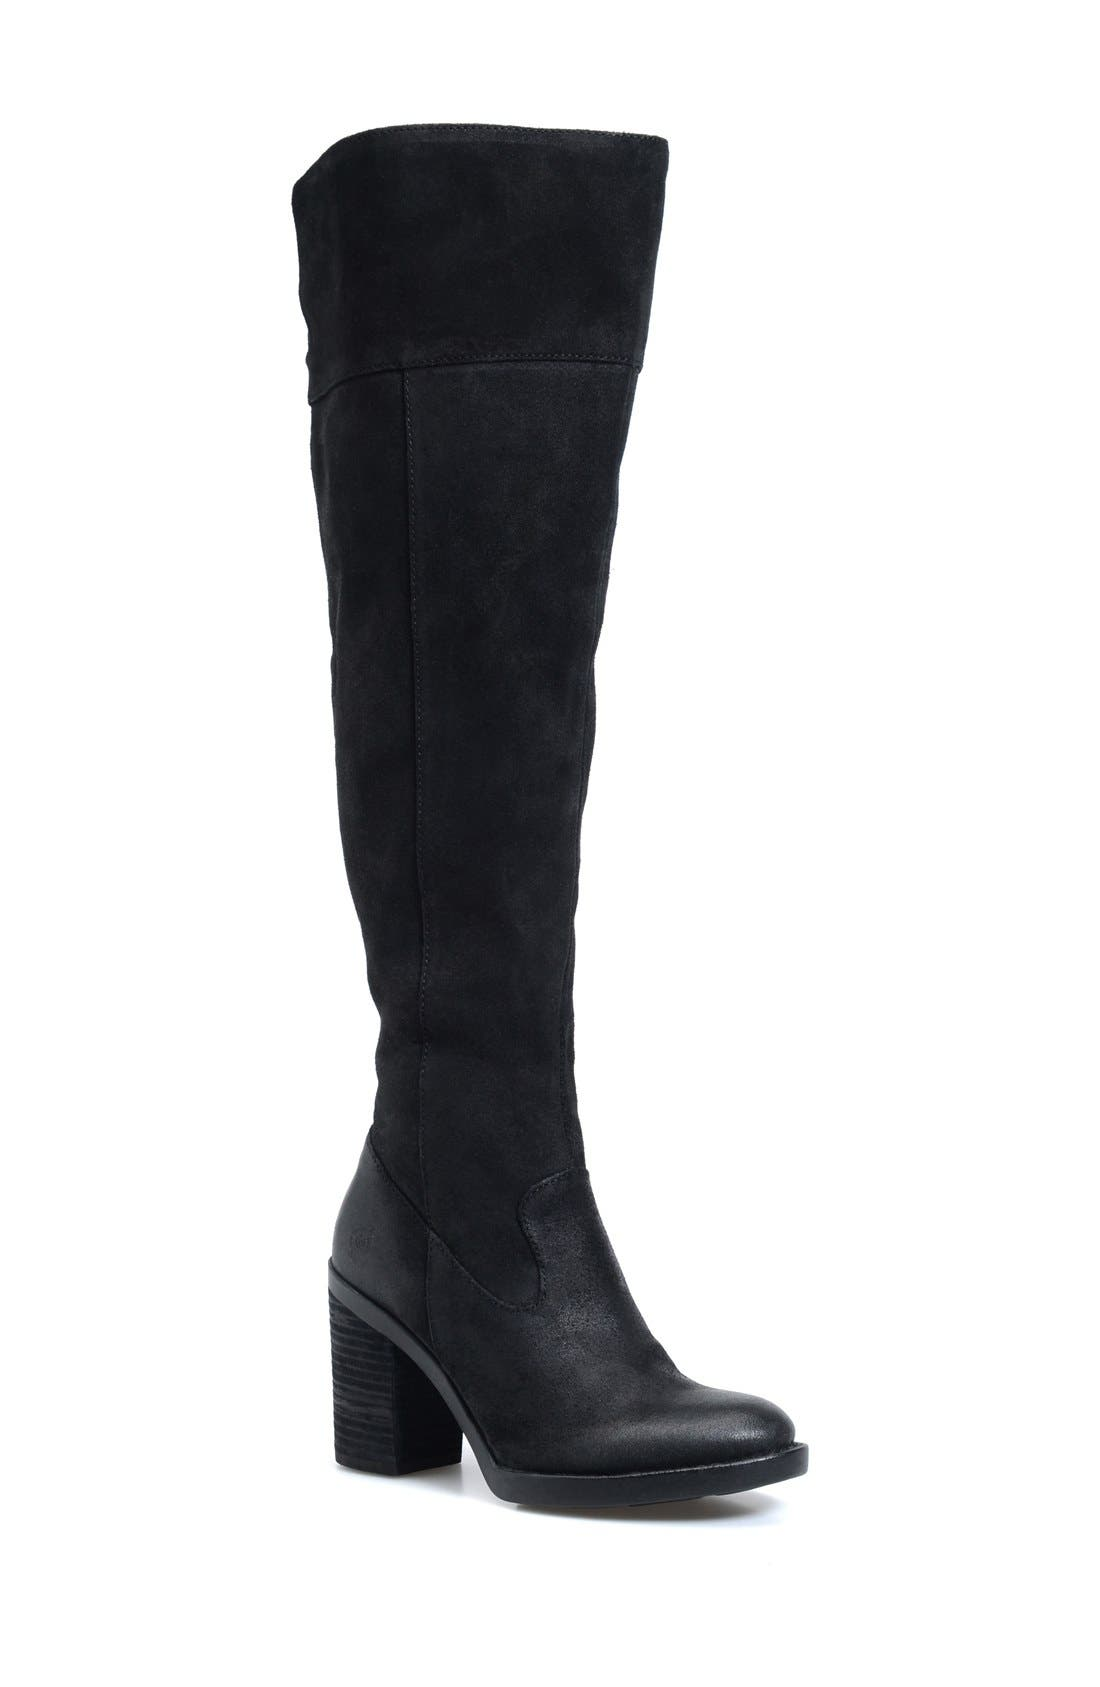 'Kathleen' Over the Knee Boot, Main, color, 001